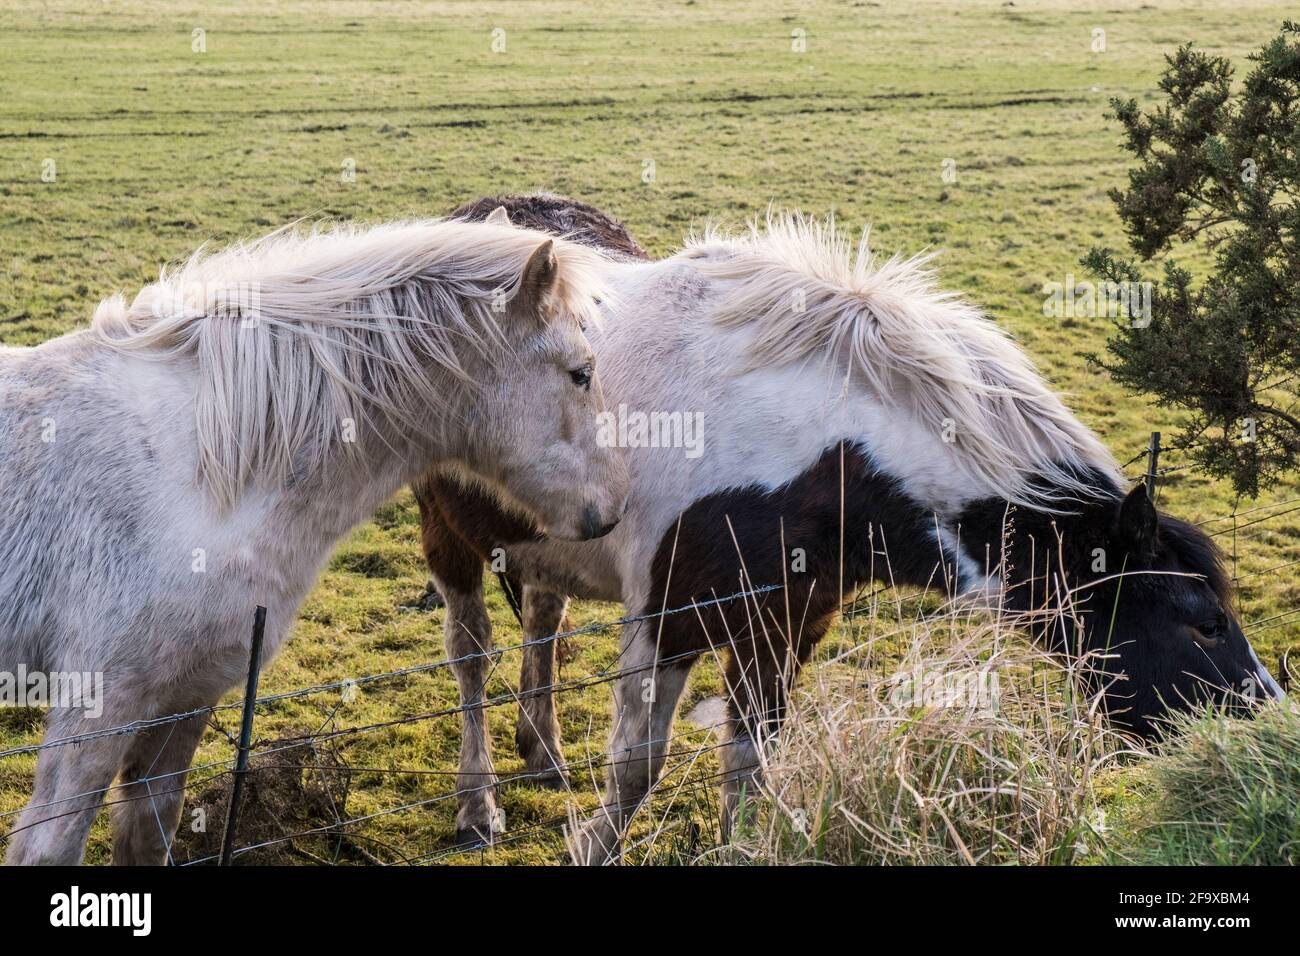 Iconic untamed Bodmin Ponies in a field on Bodmin Moor in Cornwall. Stock Photo